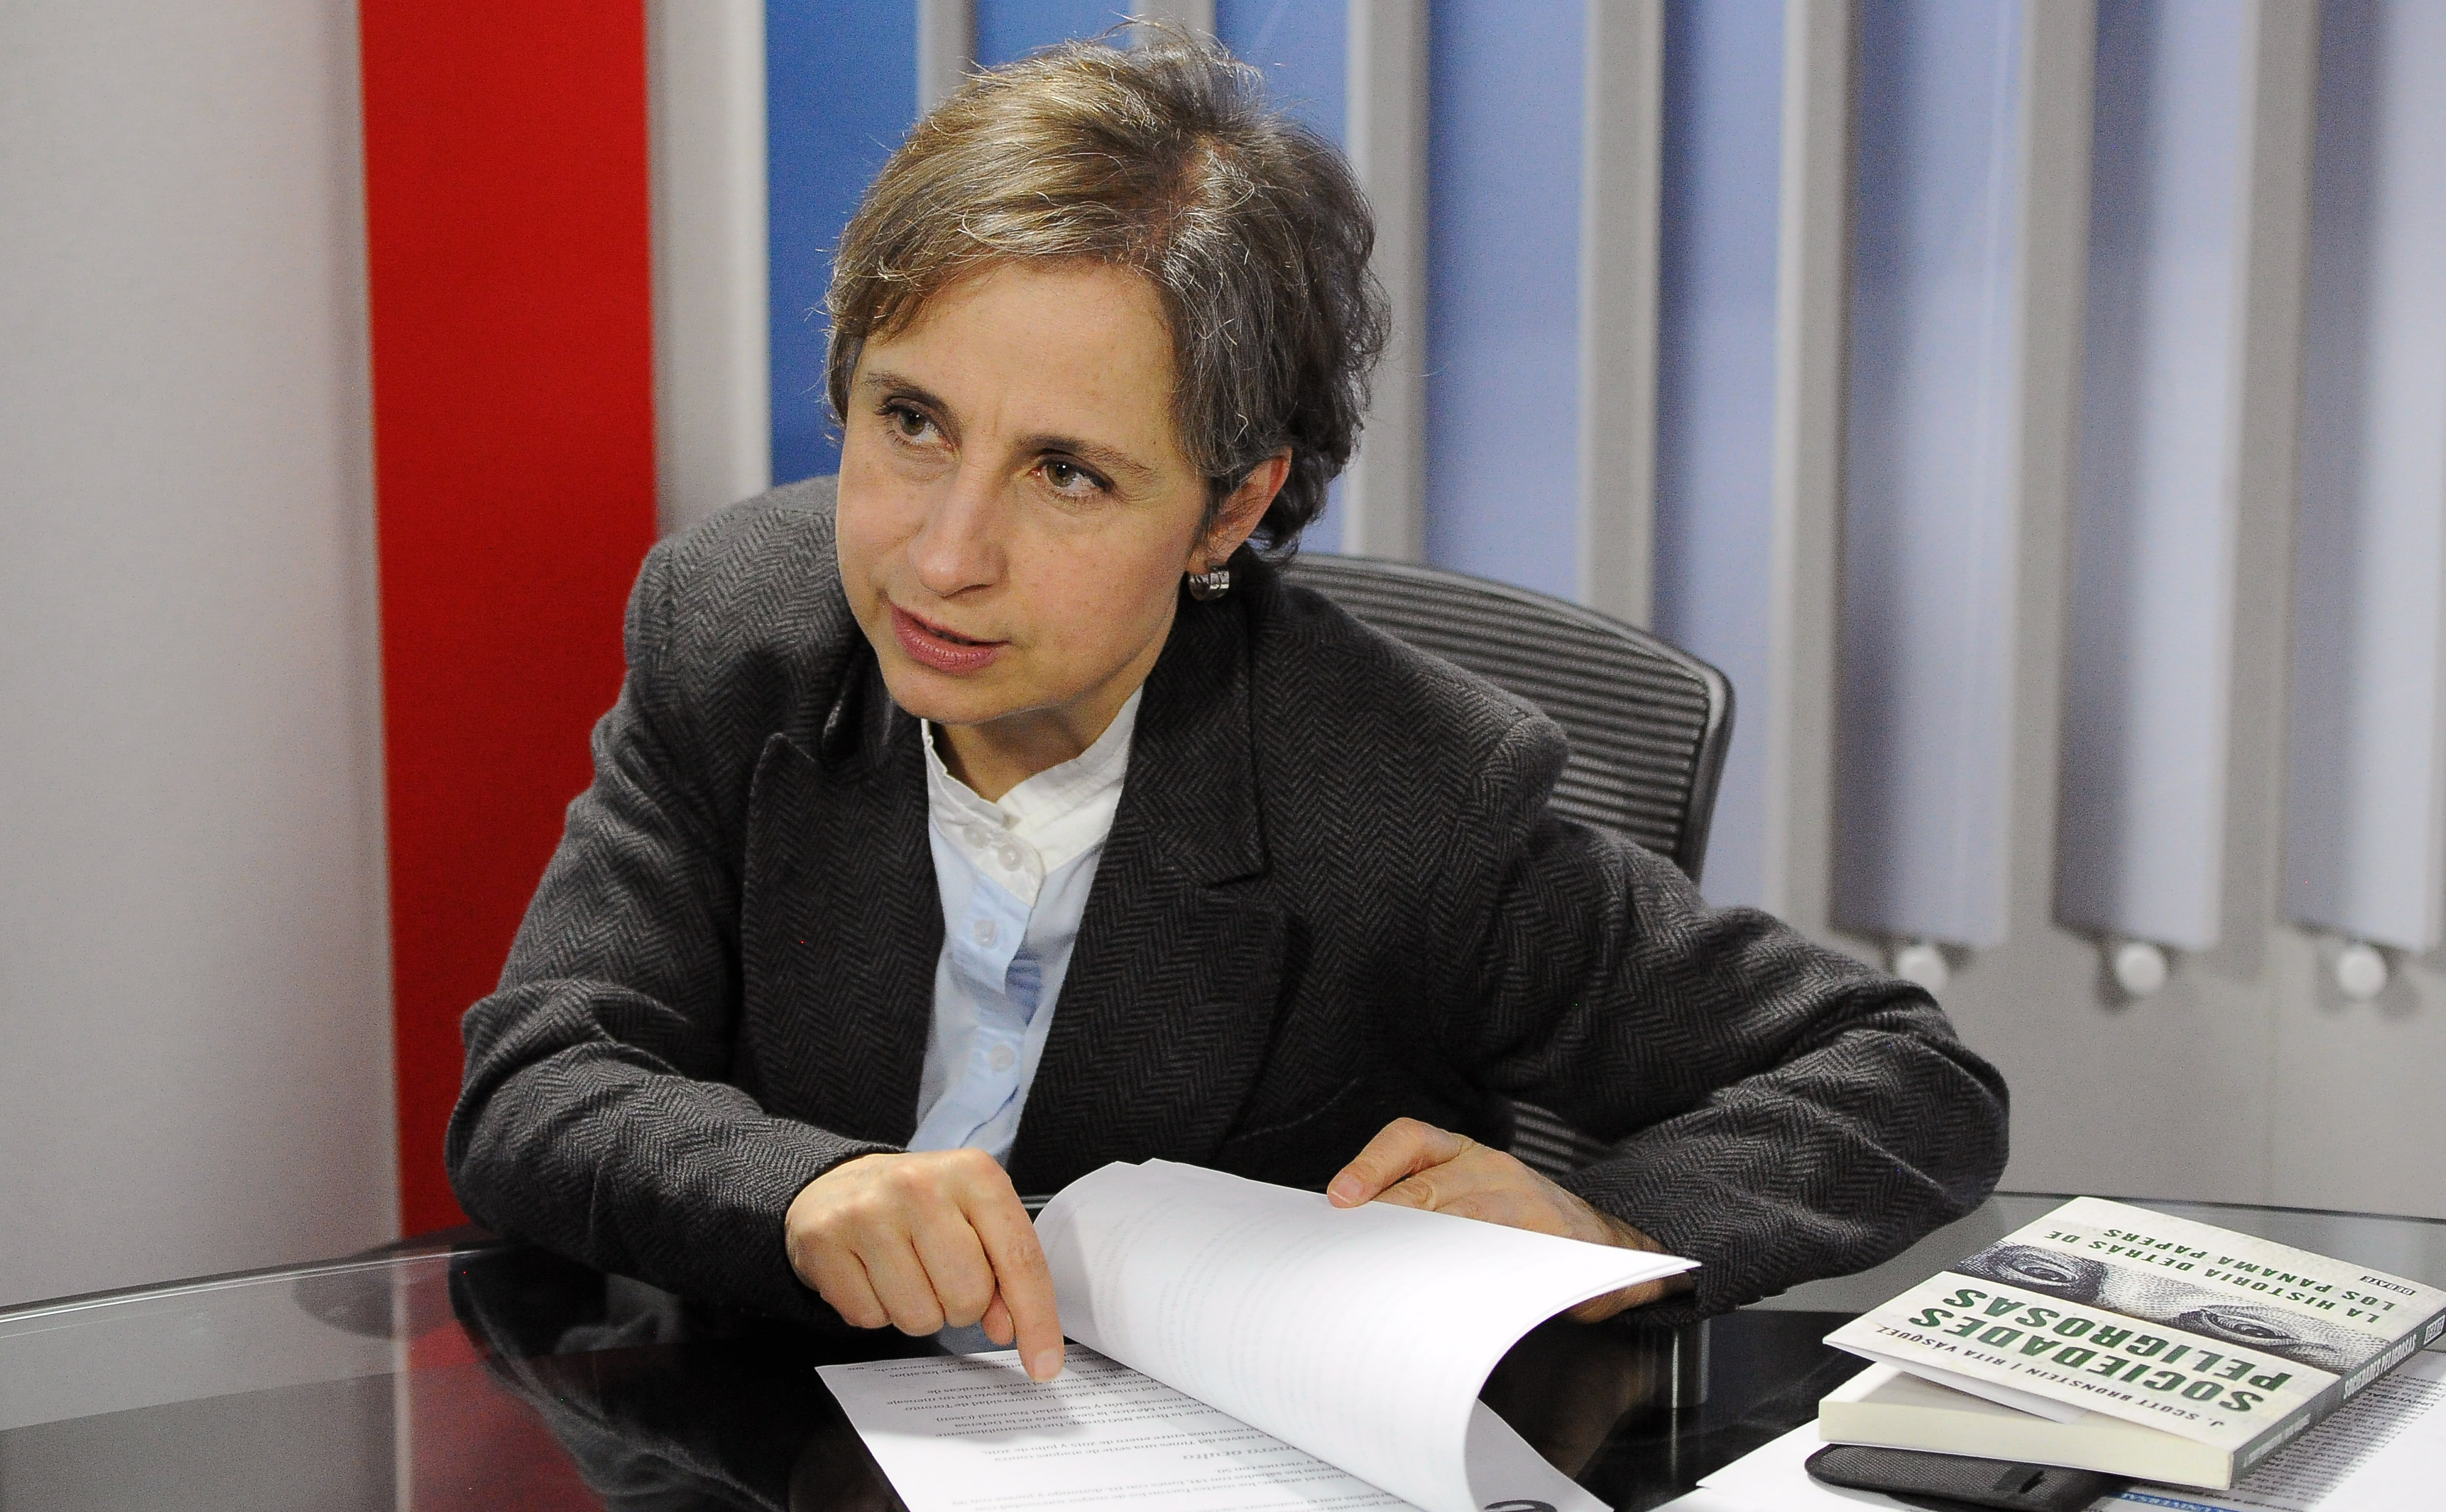 """Mexican journalist Carmen Aristegui speaks during an interview with AFP about the New York Times article """"Using Texts as Lures, Government Spyware Targets Mexican Journalists and Their Families"""", in Mexico City on June 22, 2017.Mexican prosecutors said Wednesday they have opened an investigation into allegations the government spied on leading journalists, human rights activists and anti-corruption campaigners. / AFP PHOTO / BERNARDO MONTOYA (Photo credit should read BERNARDO MONTOYA/AFP/Getty Images)"""